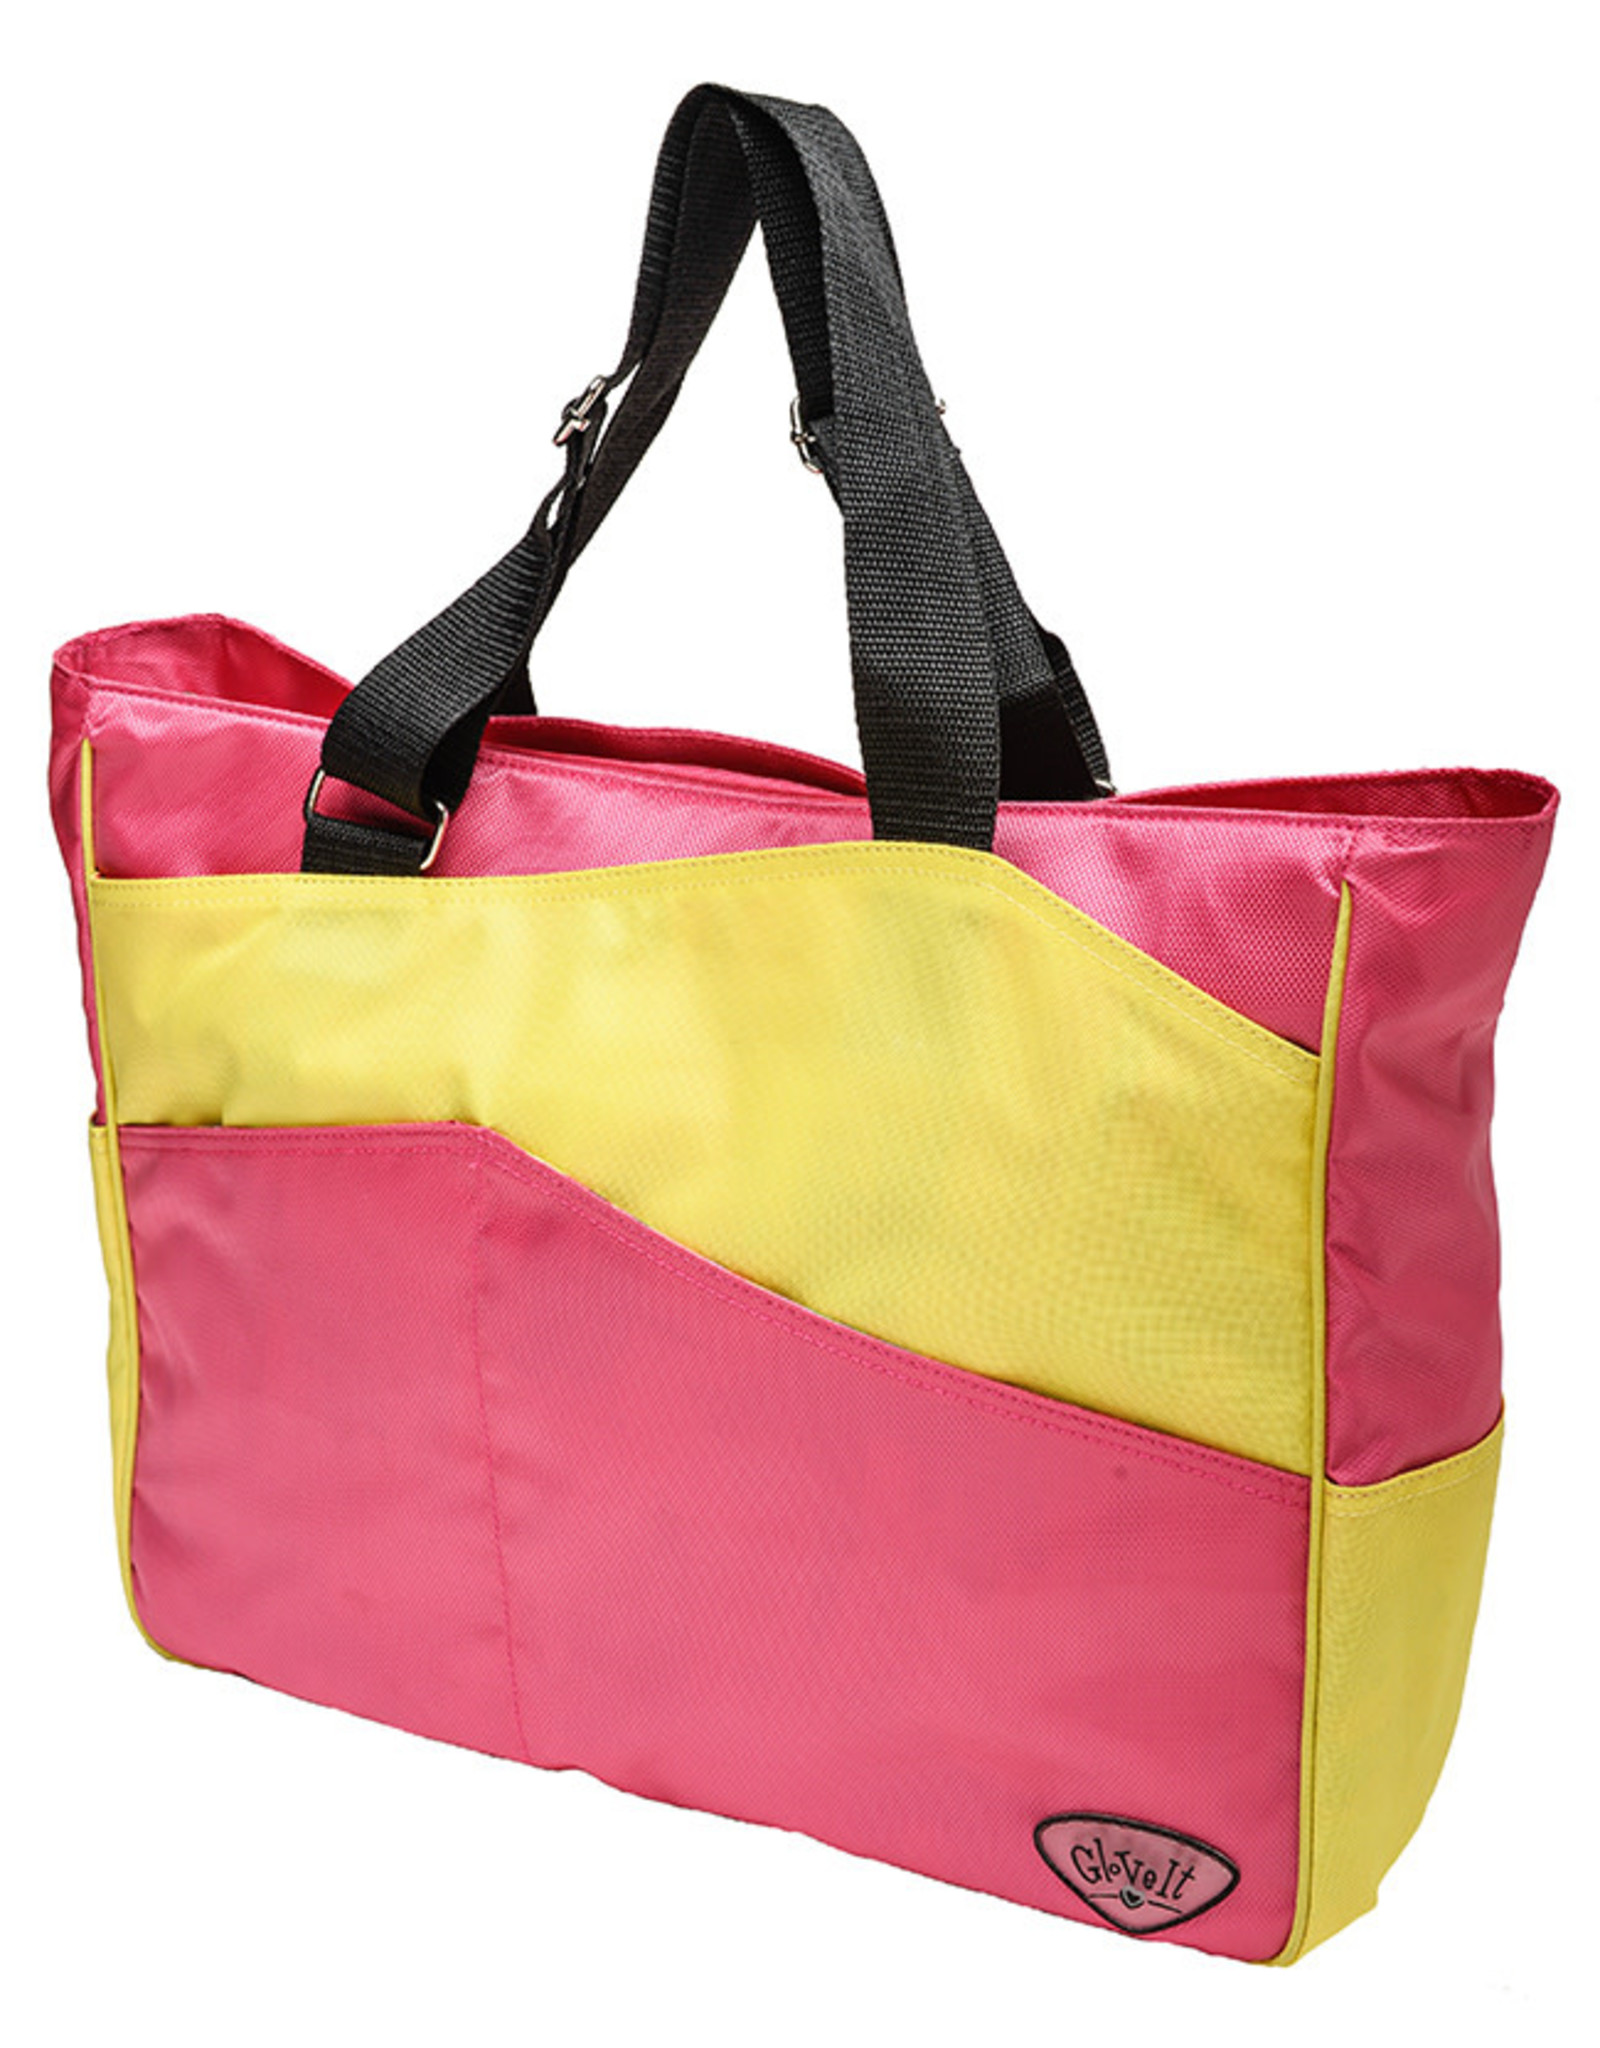 Glove It Dragon Fly Sport Tote Bag